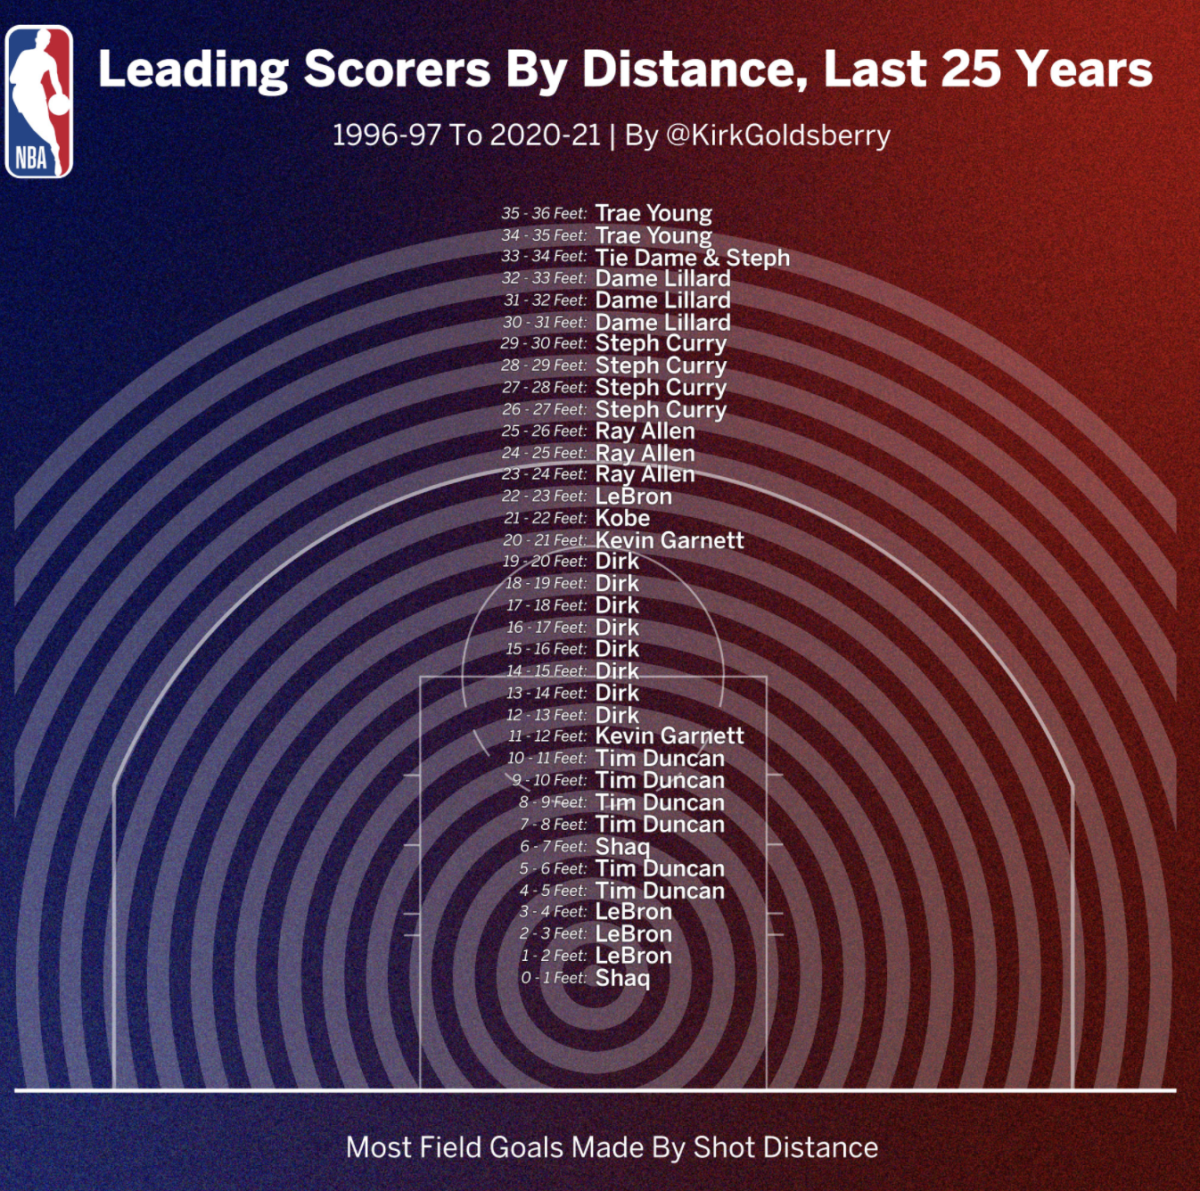 NBA Leading Scorers By Distance In The Last 25 Years: Shaq And LeBron Dominated From 0-4 Feet